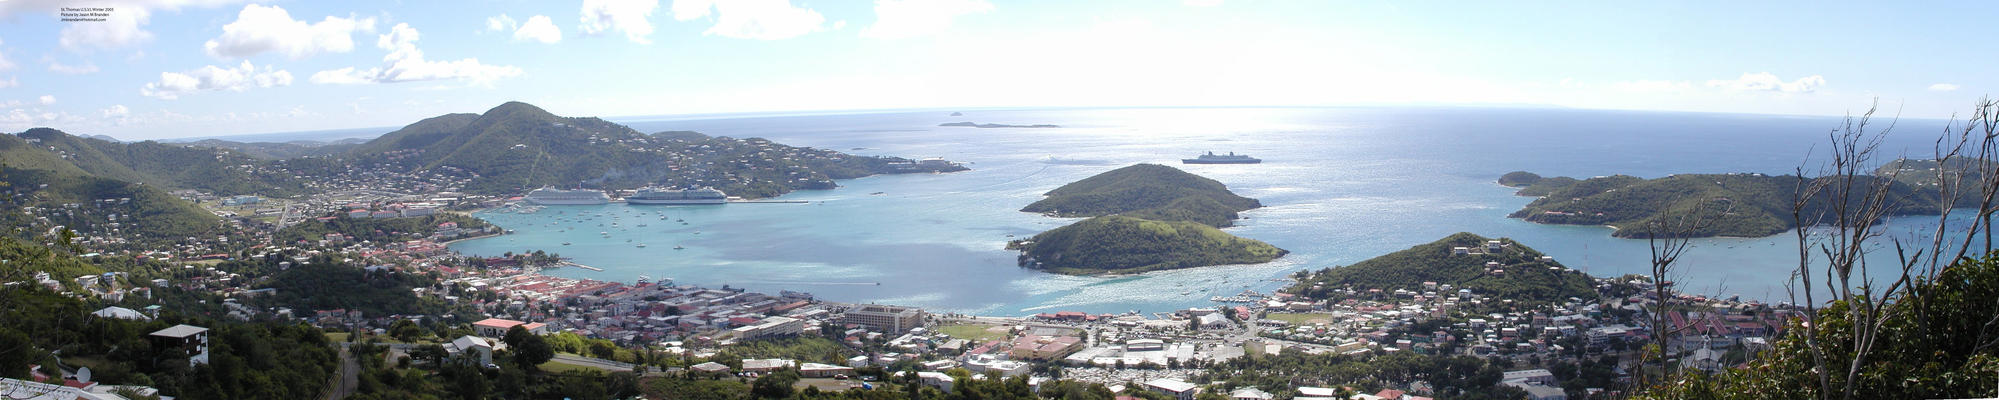 St Thomas City by Wulfsige79